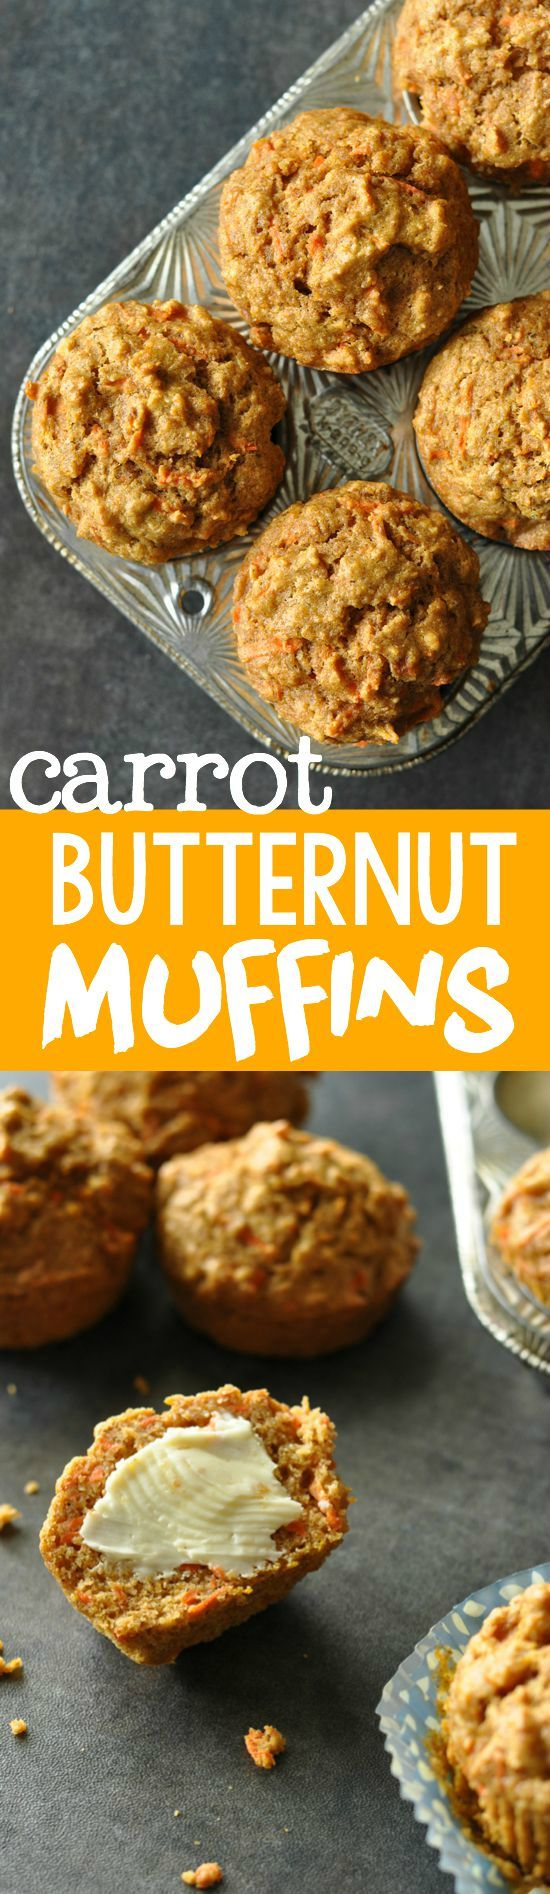 Carrot Butternut Whole Grain Muffins :: kid scarfed and approved! My toddler LOVES these healthy muffins!